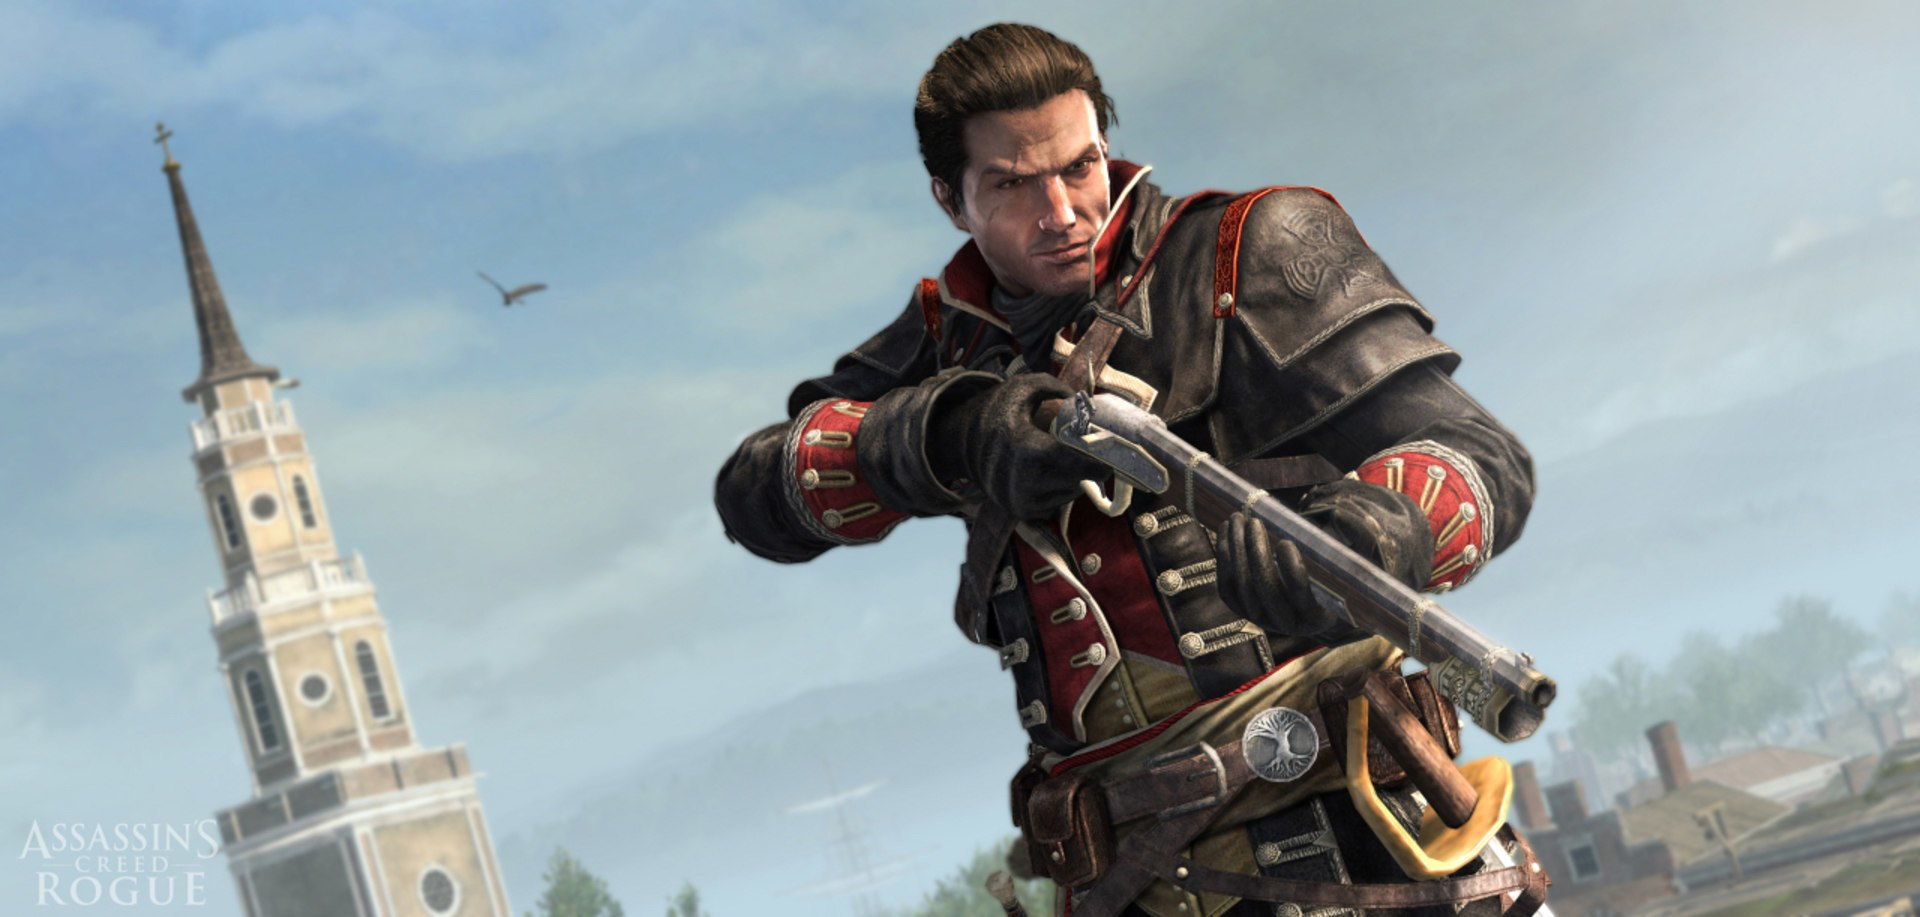 2641994-assassins_creed_rogue_rifle_1409668974